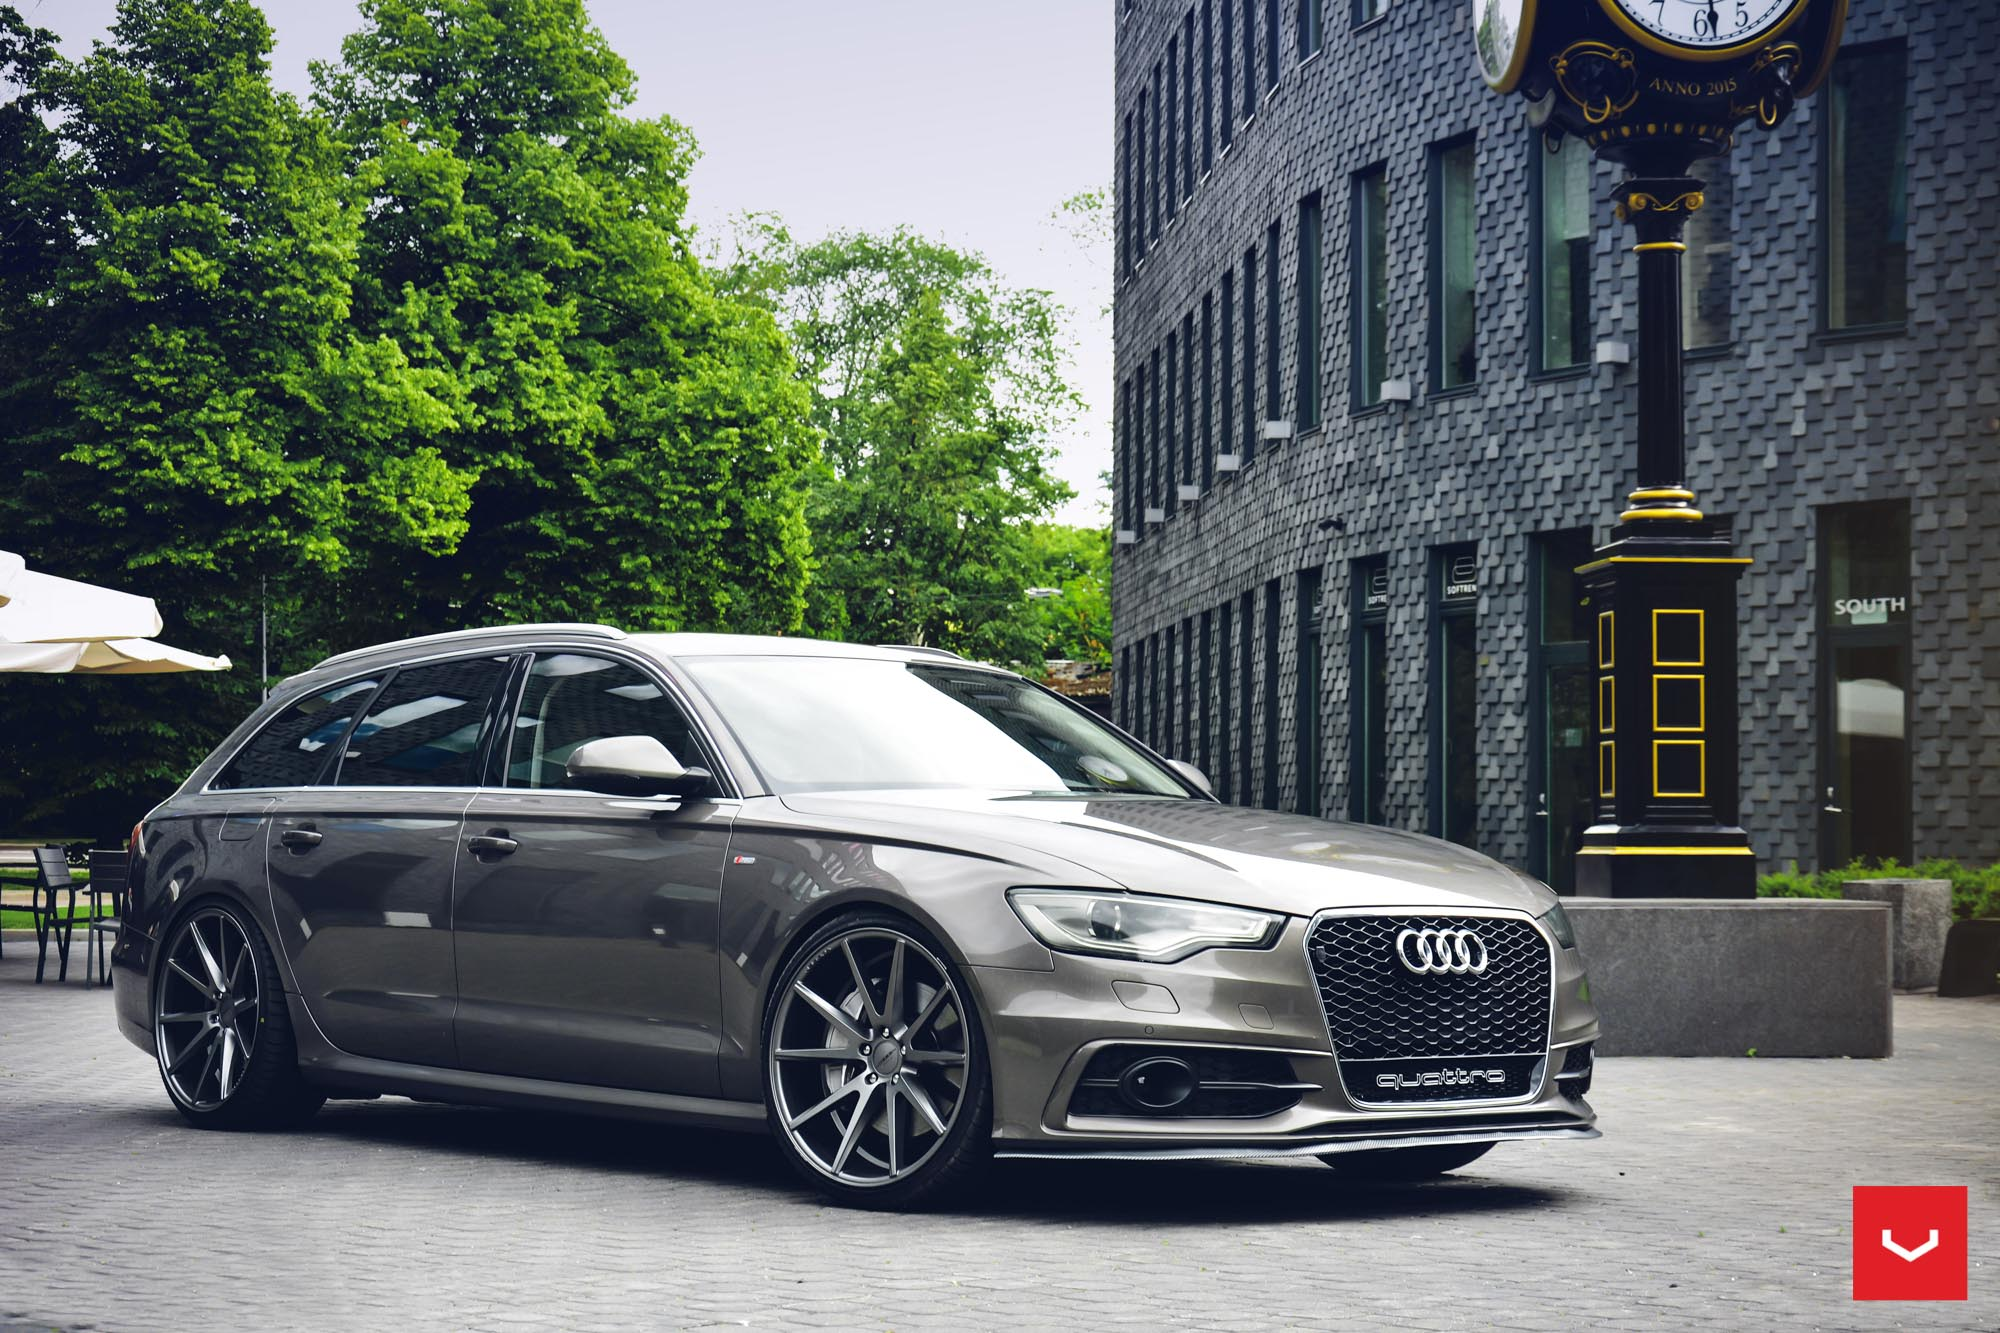 Audi A6 Hybrid Forged Series Vfs 1 Vossen Wheels